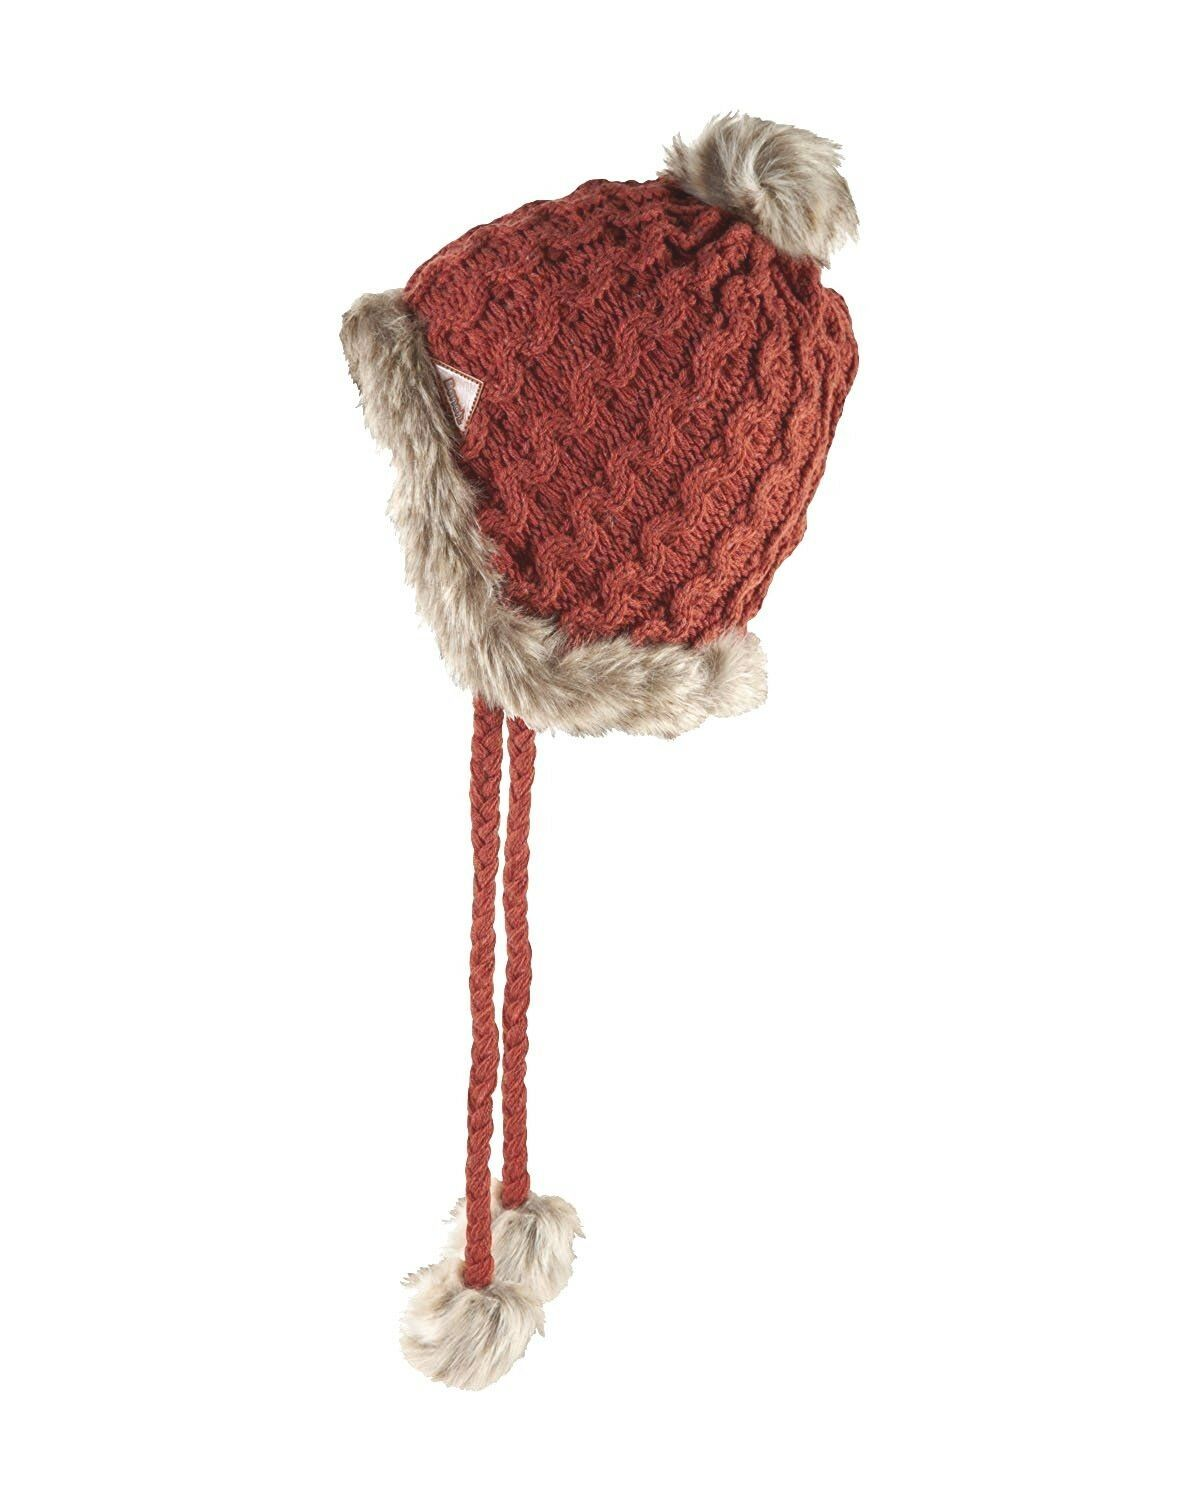 Bench Hough Red Beanie w Tassels Faux Fur Winter Ski Hat BLWA0346 NWT